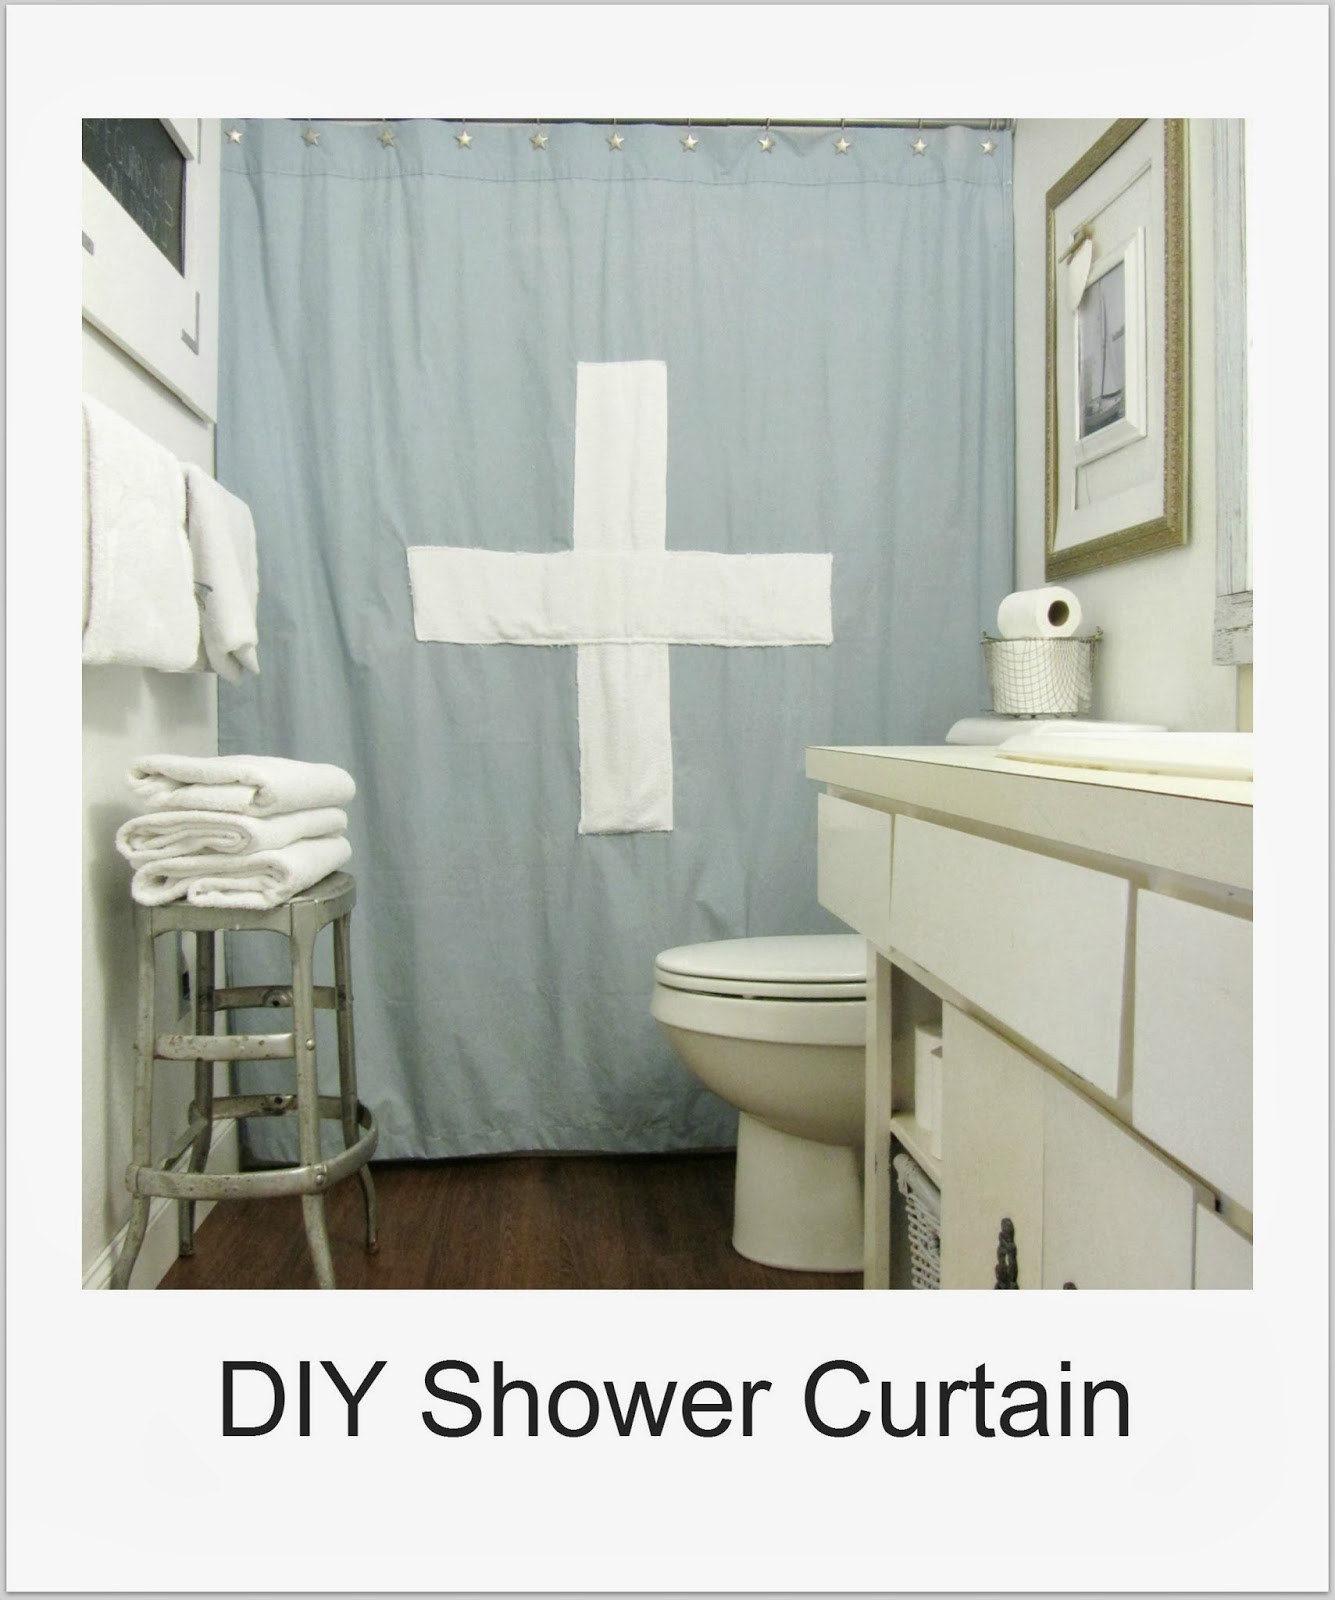 http://thewickerhouse.blogspot.com/2012/11/diy-shower-curtain.html